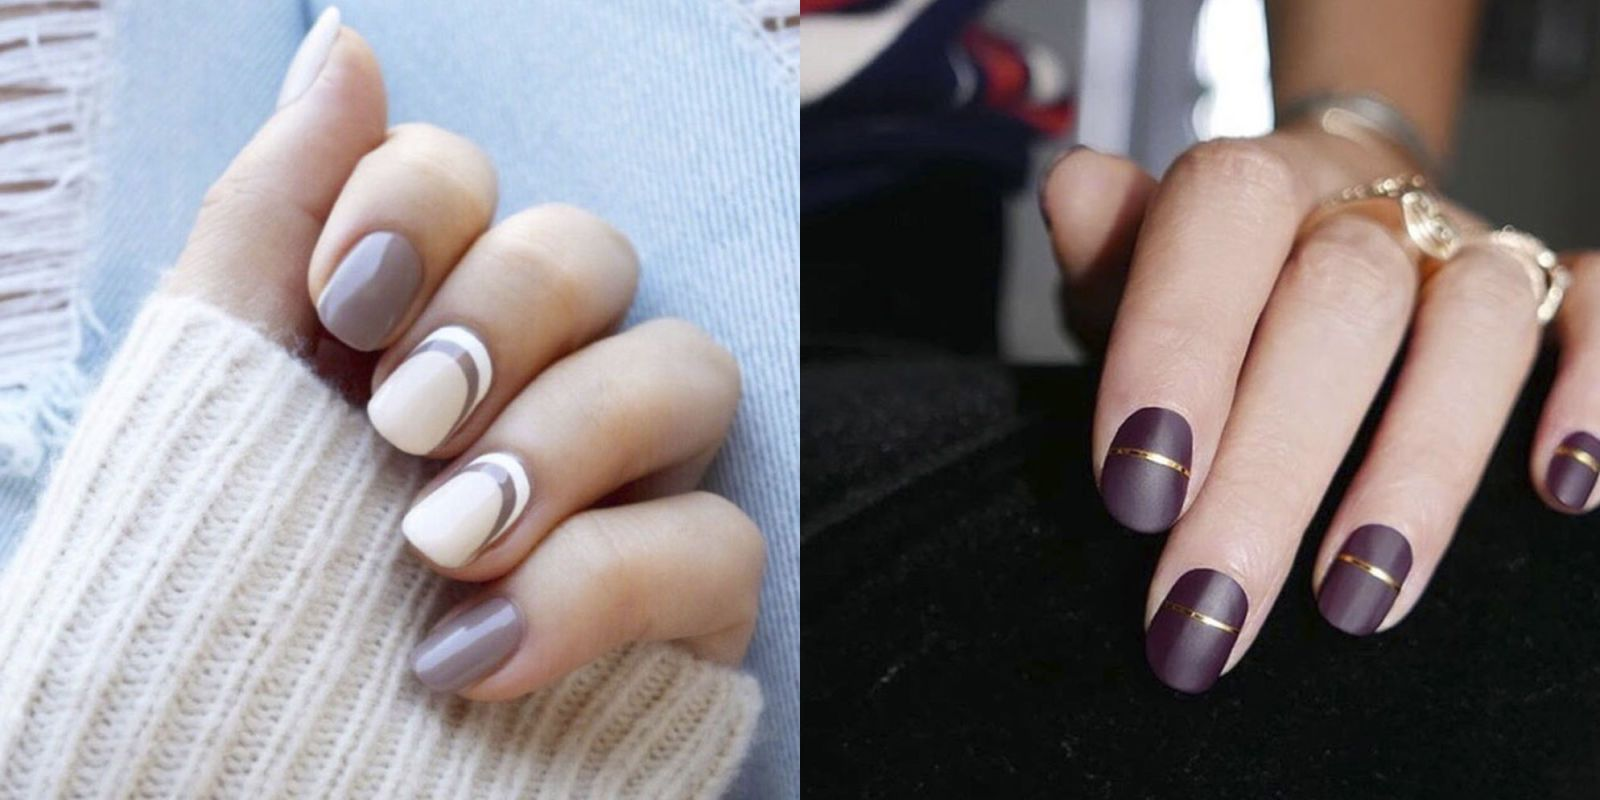 Let your nails be an instant accessory on days too cold to even get dressed. & 15 Cute Winter Nail Art Ideas - Best Nail Designs for Winter 2016-2017